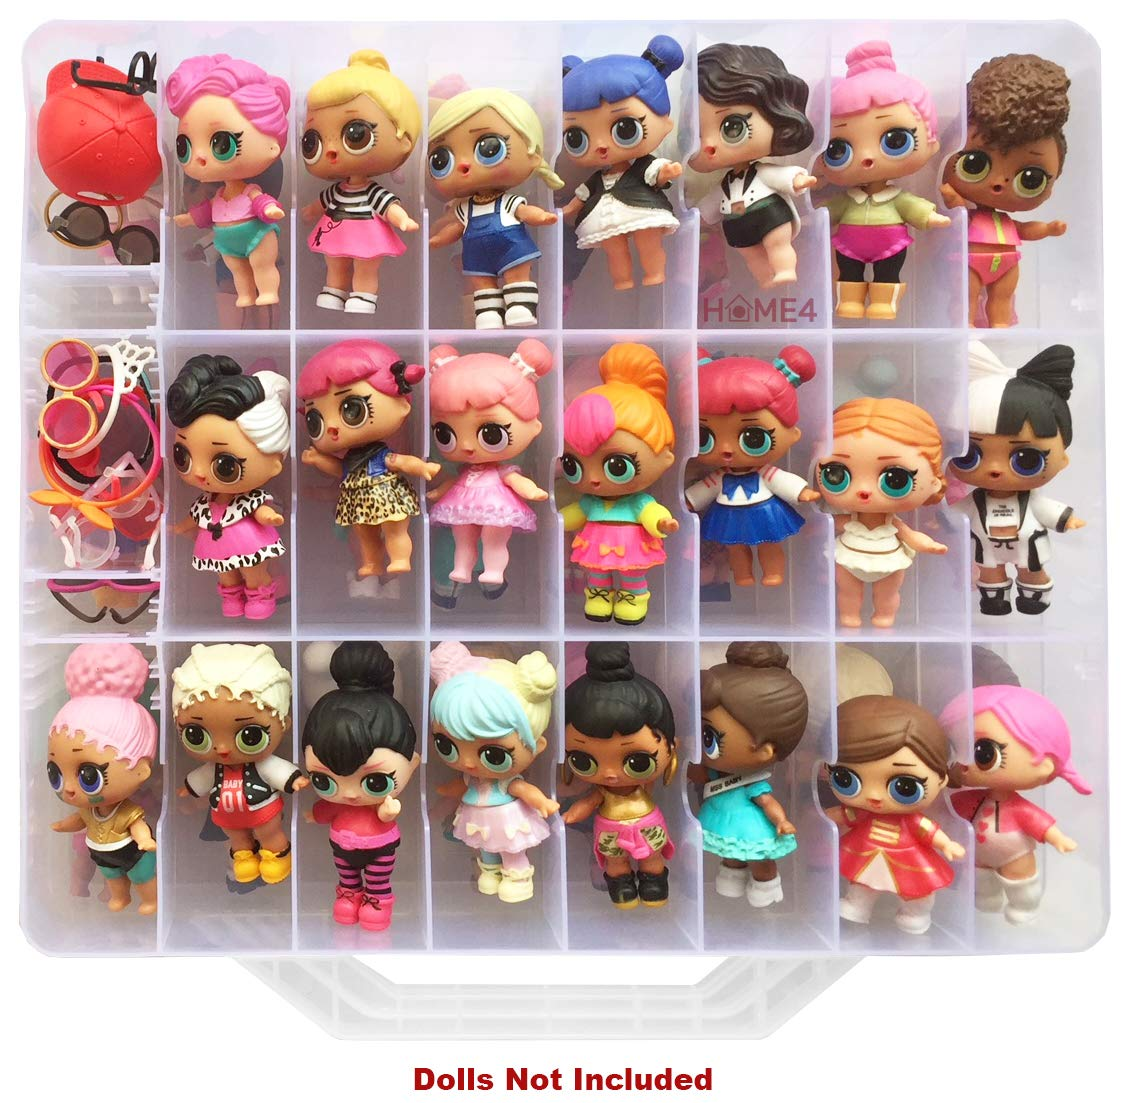 HOME4 Double Sided Storage Container - Toy Organizer Case - 48 Compartments - Perfect for Small Dolls and Toys - Dolls Not Included (Clear)